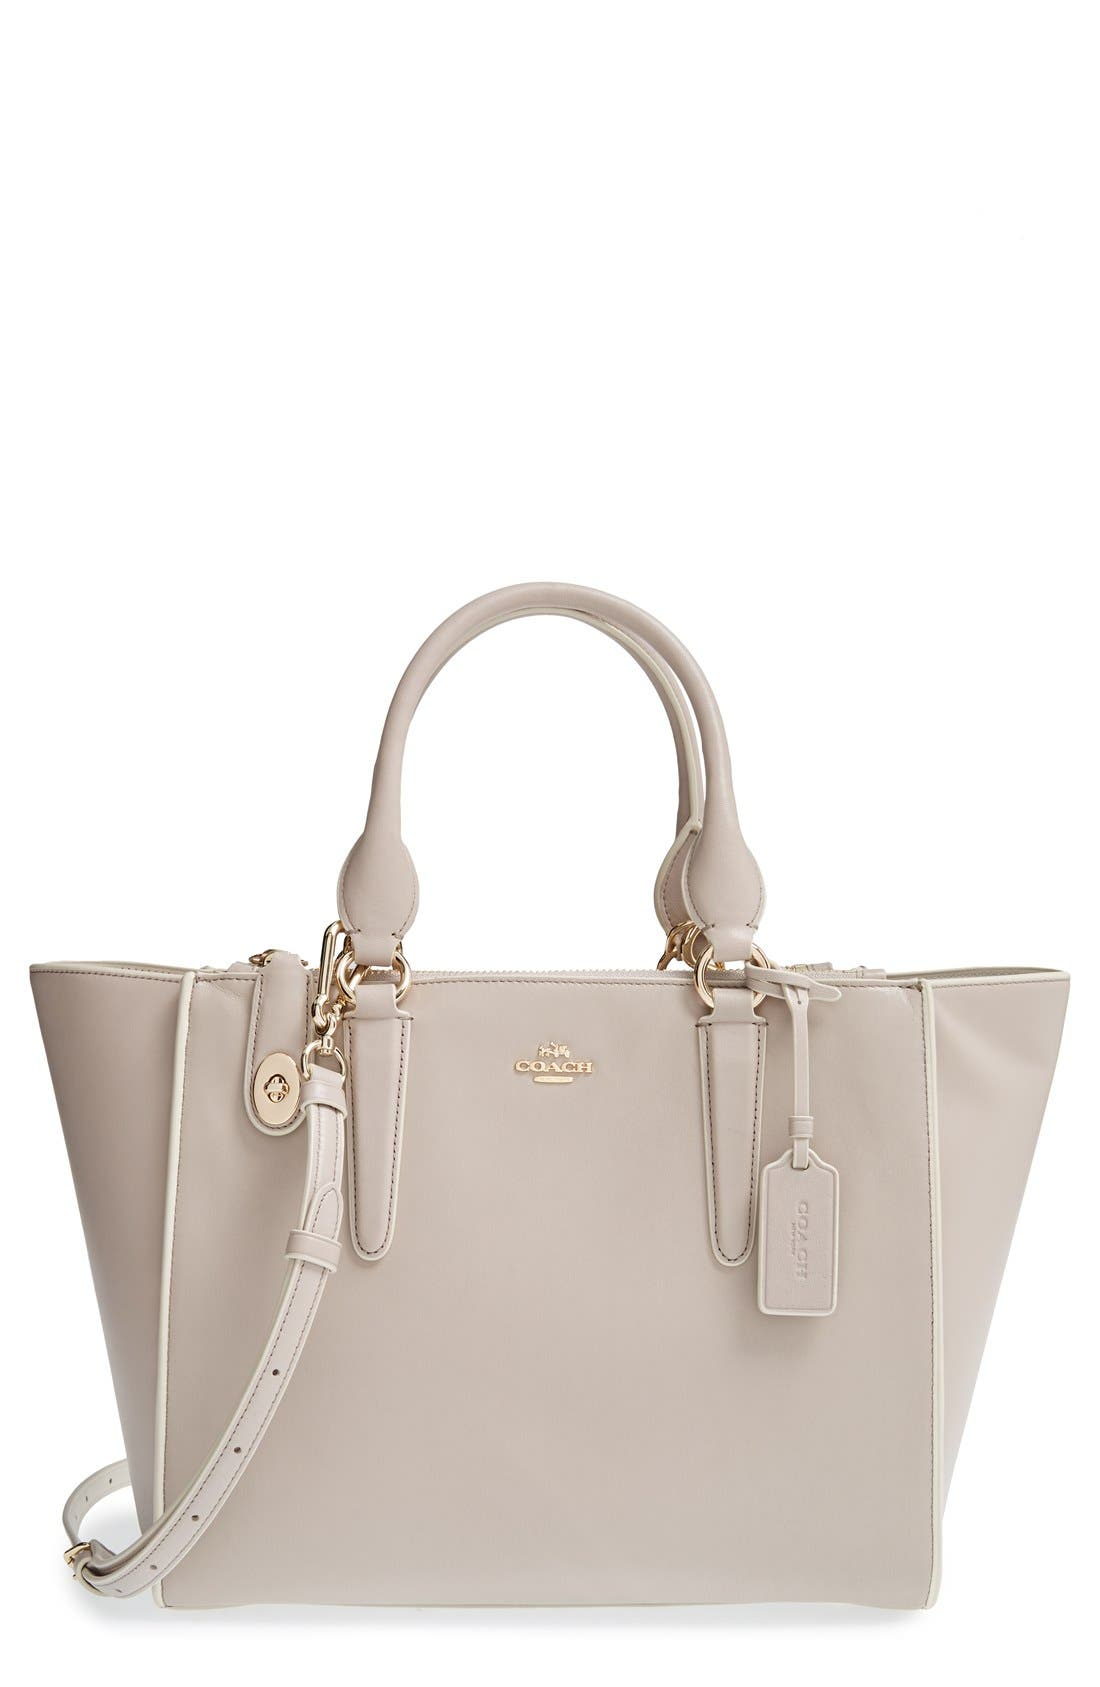 Main Image - COACH 'Crosby' Leather Tote